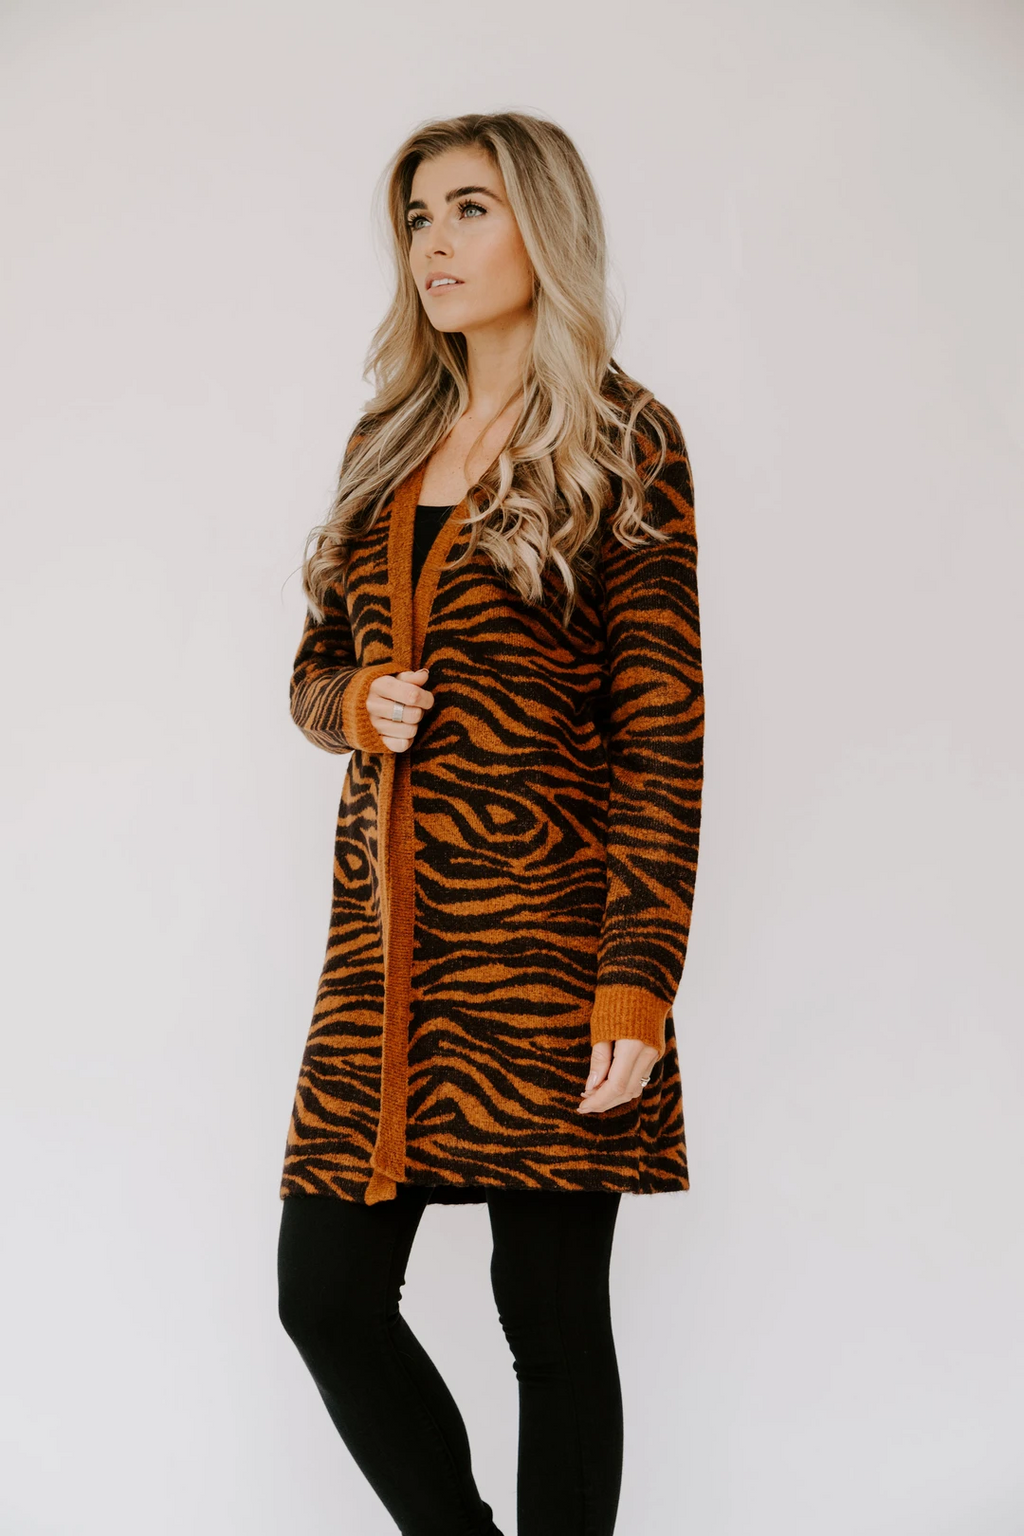 trinny cardigan | big cat